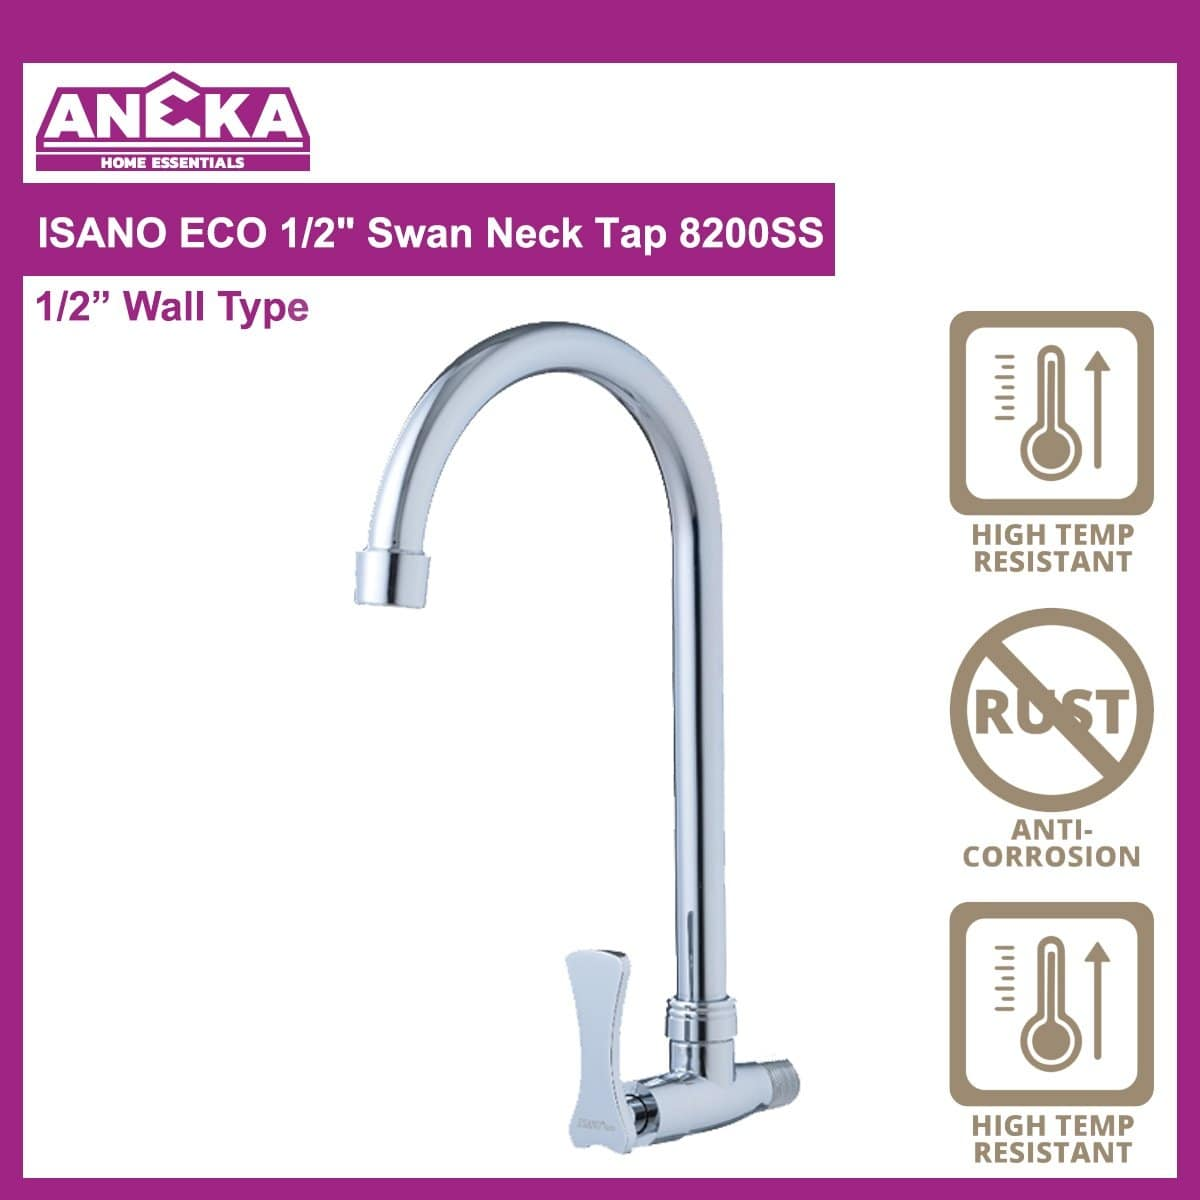 "ISANO ECO 1/2"" Swan Neck Tap 8200SS"